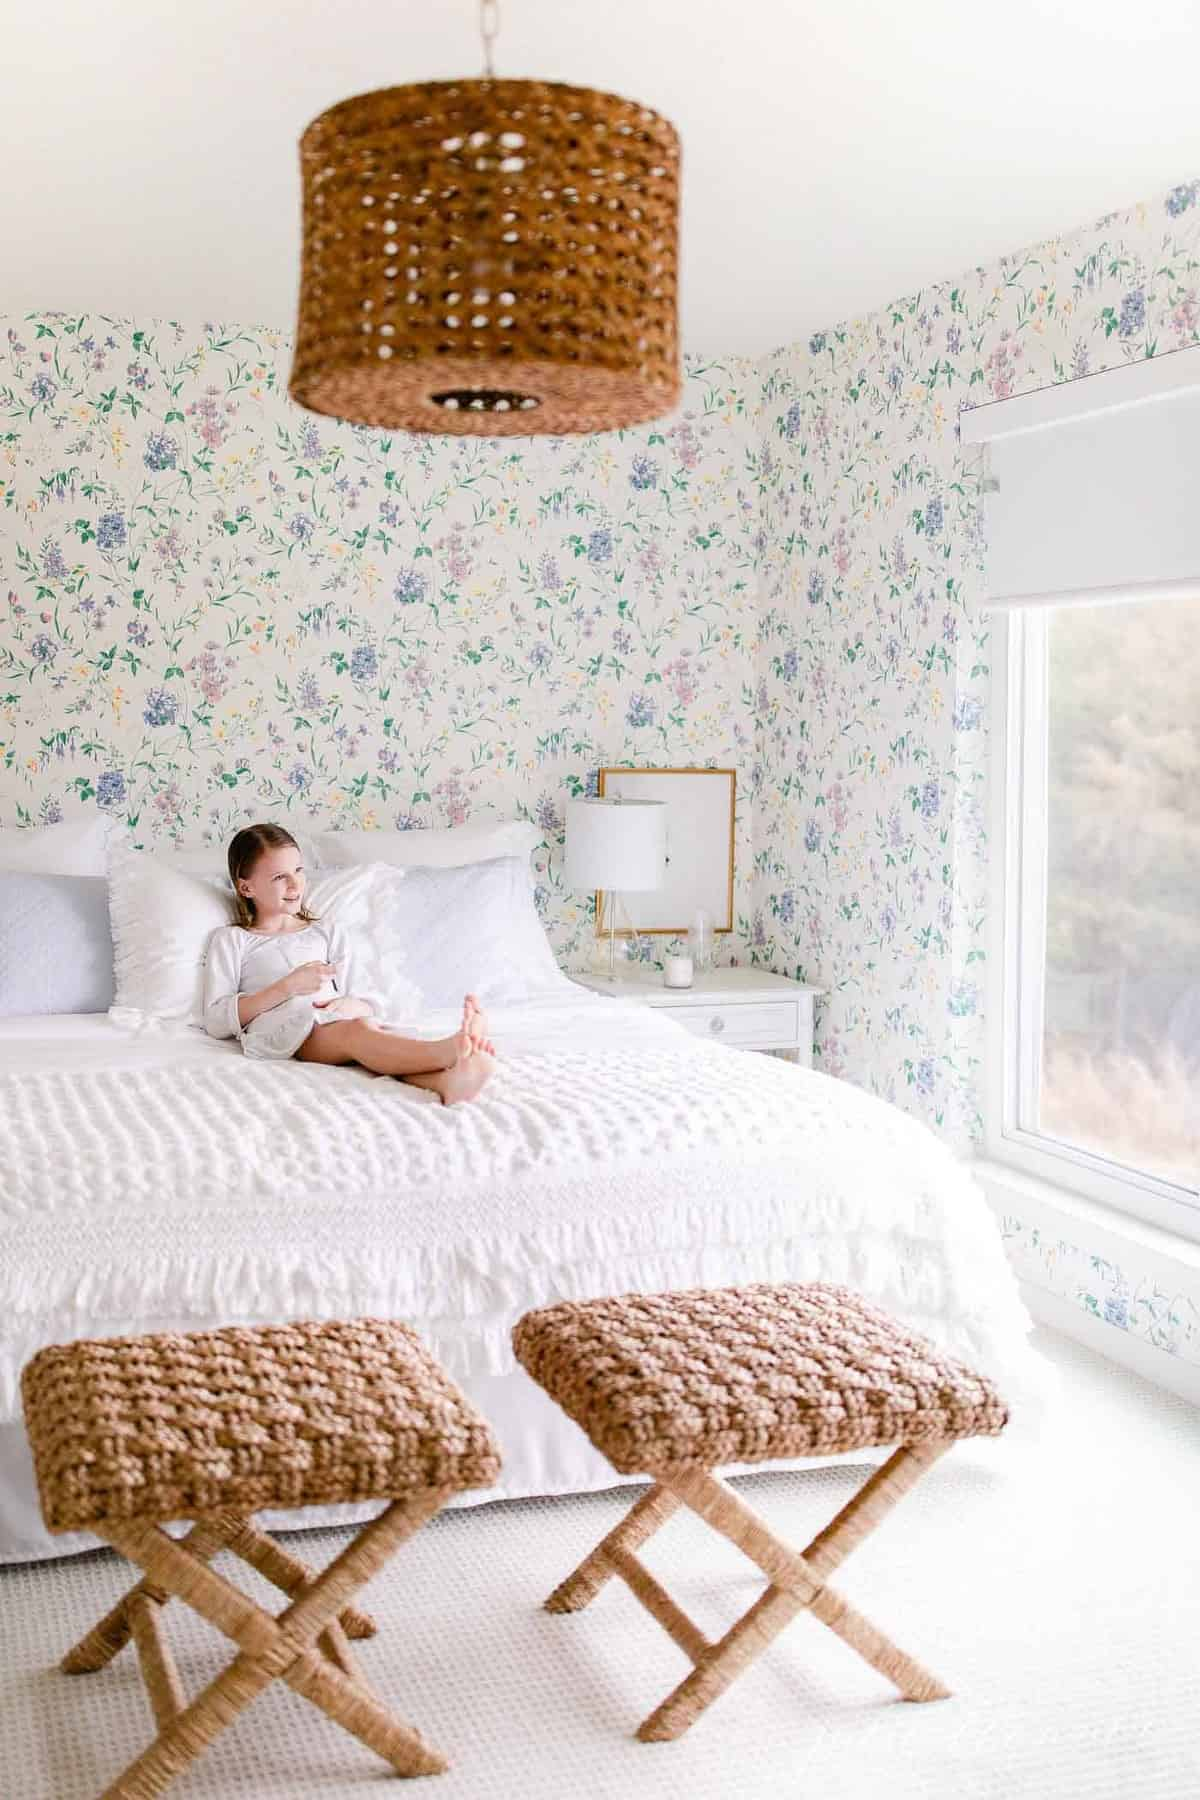 Floral wallpapered bedroom, a little girl lies on the bed with a remote for a motorized roller shade.